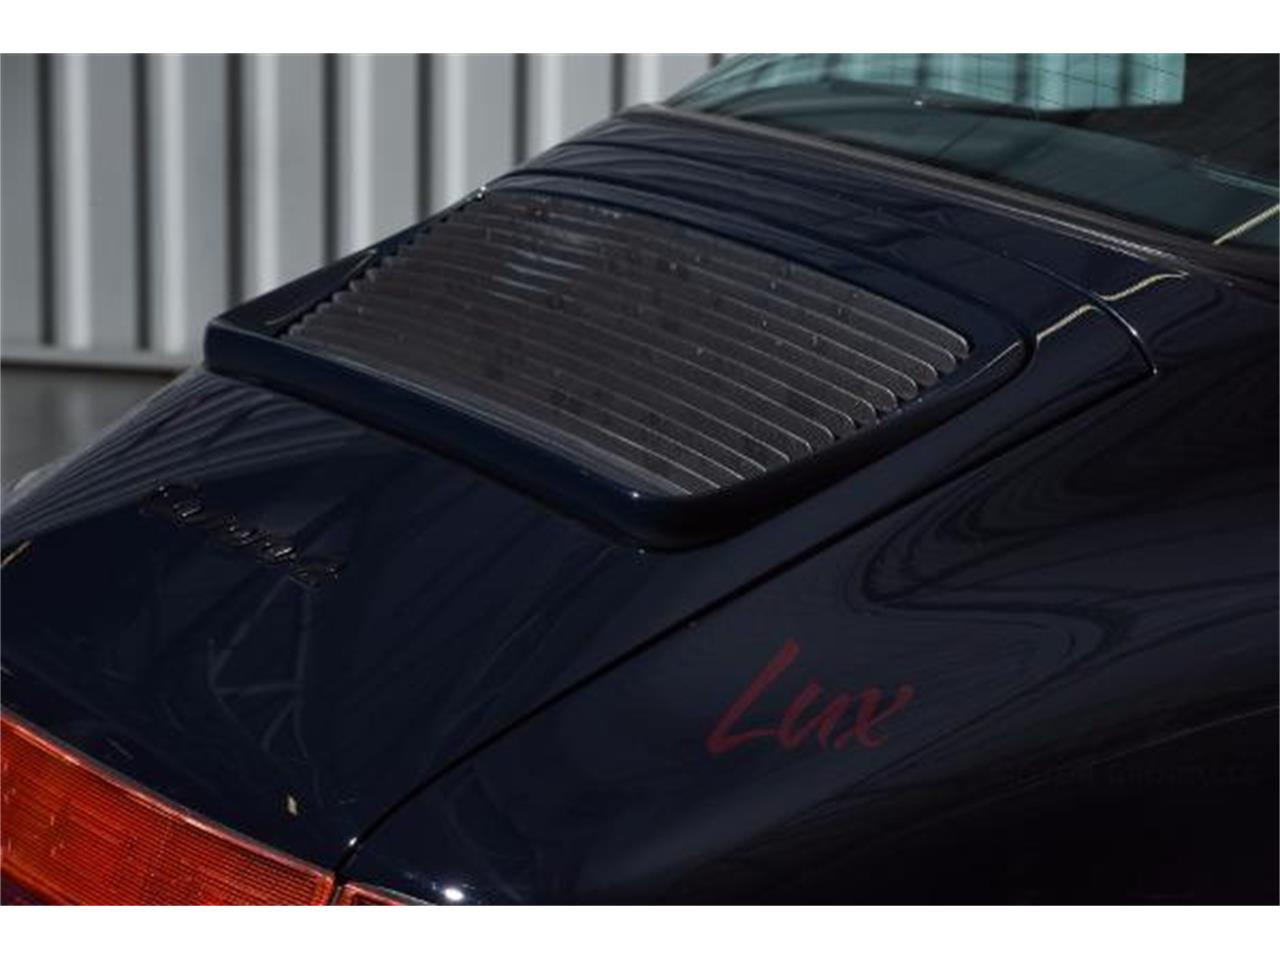 Large Picture of 1990 Porsche 964 Carrera 2 Targa located in New York - MNZP